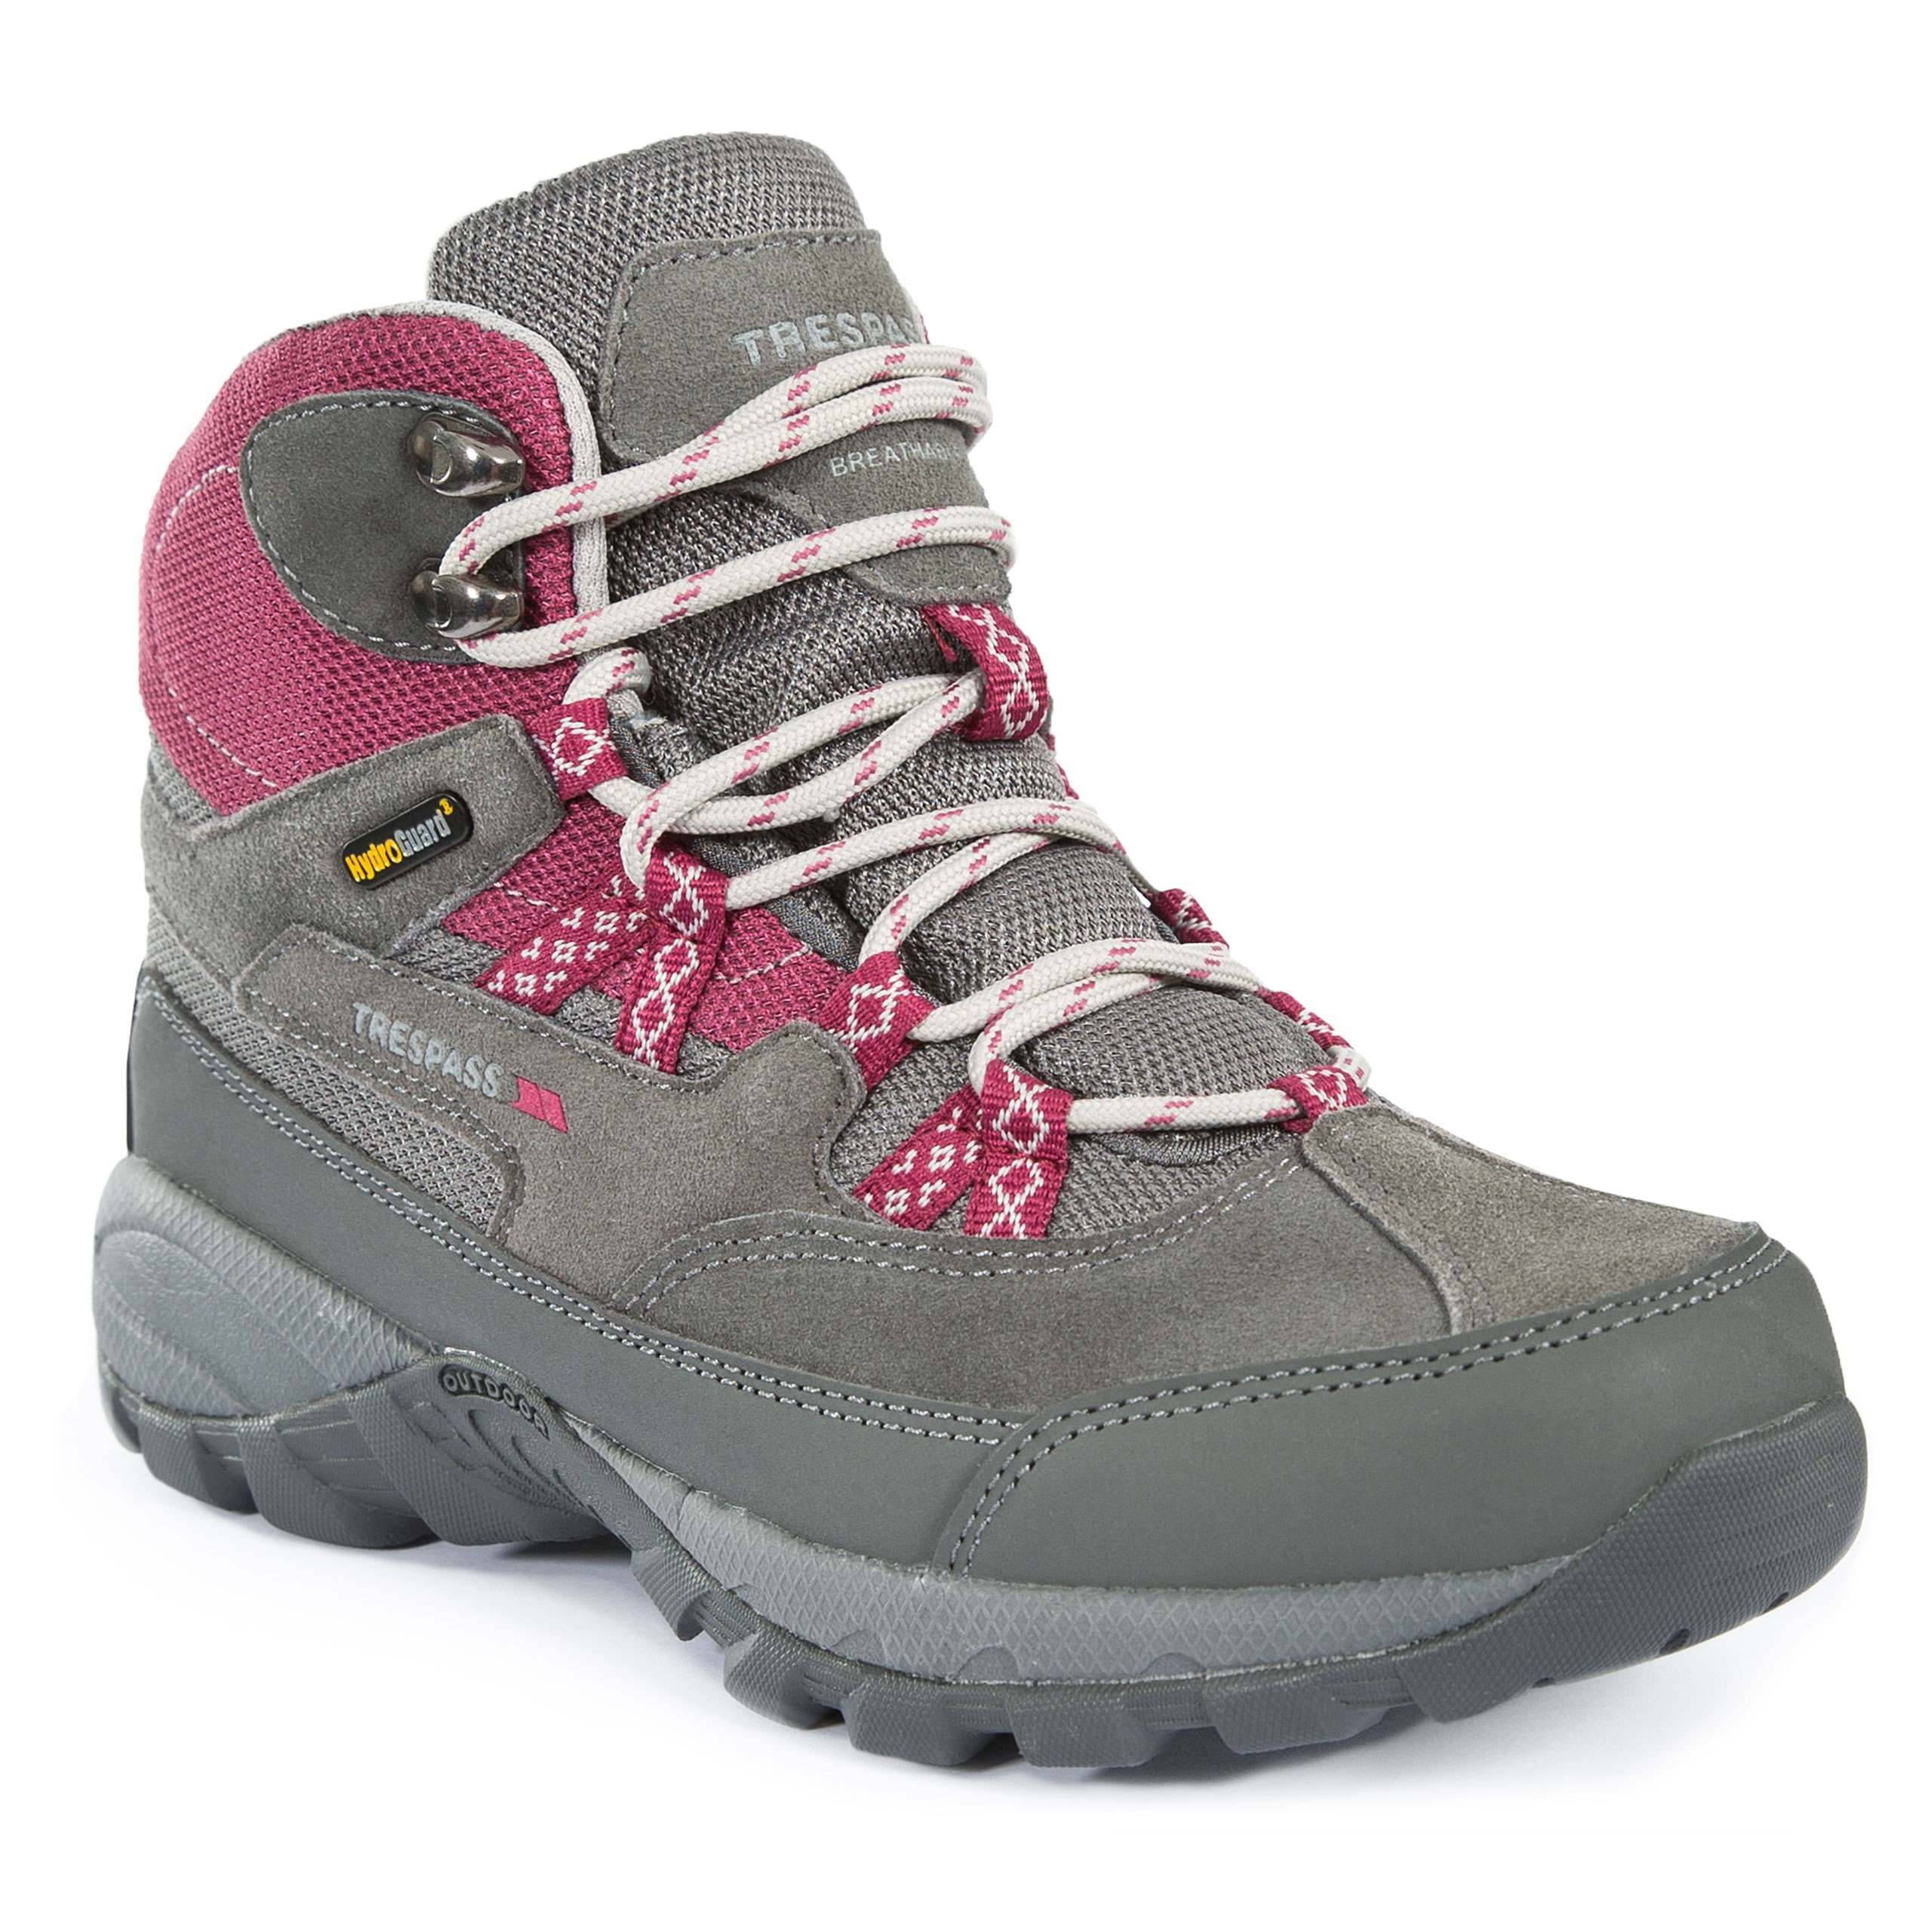 f226f6cc320 Merse Women's Breathable Walking Boots